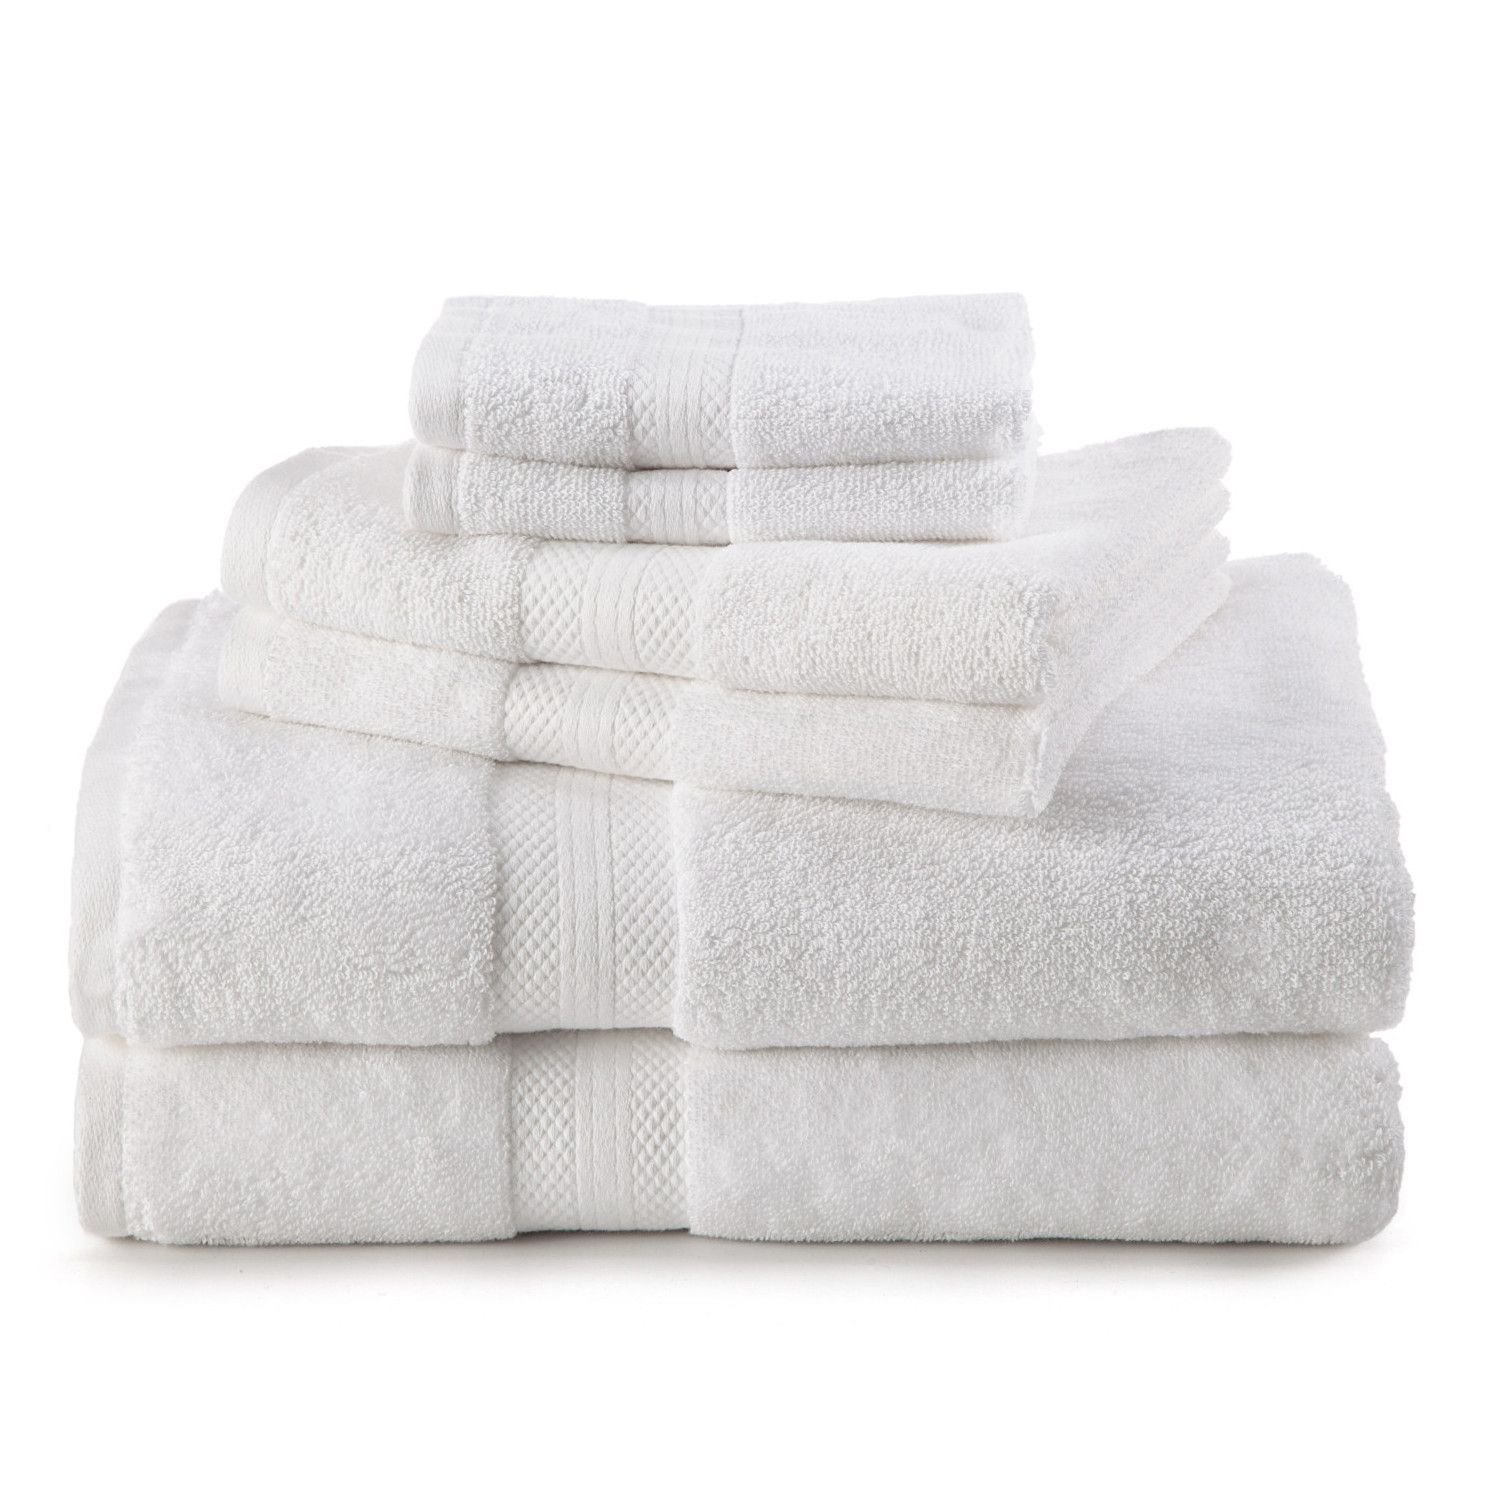 Abundance 6 Piece Towel Set Towel Set Towel Washing Clothes